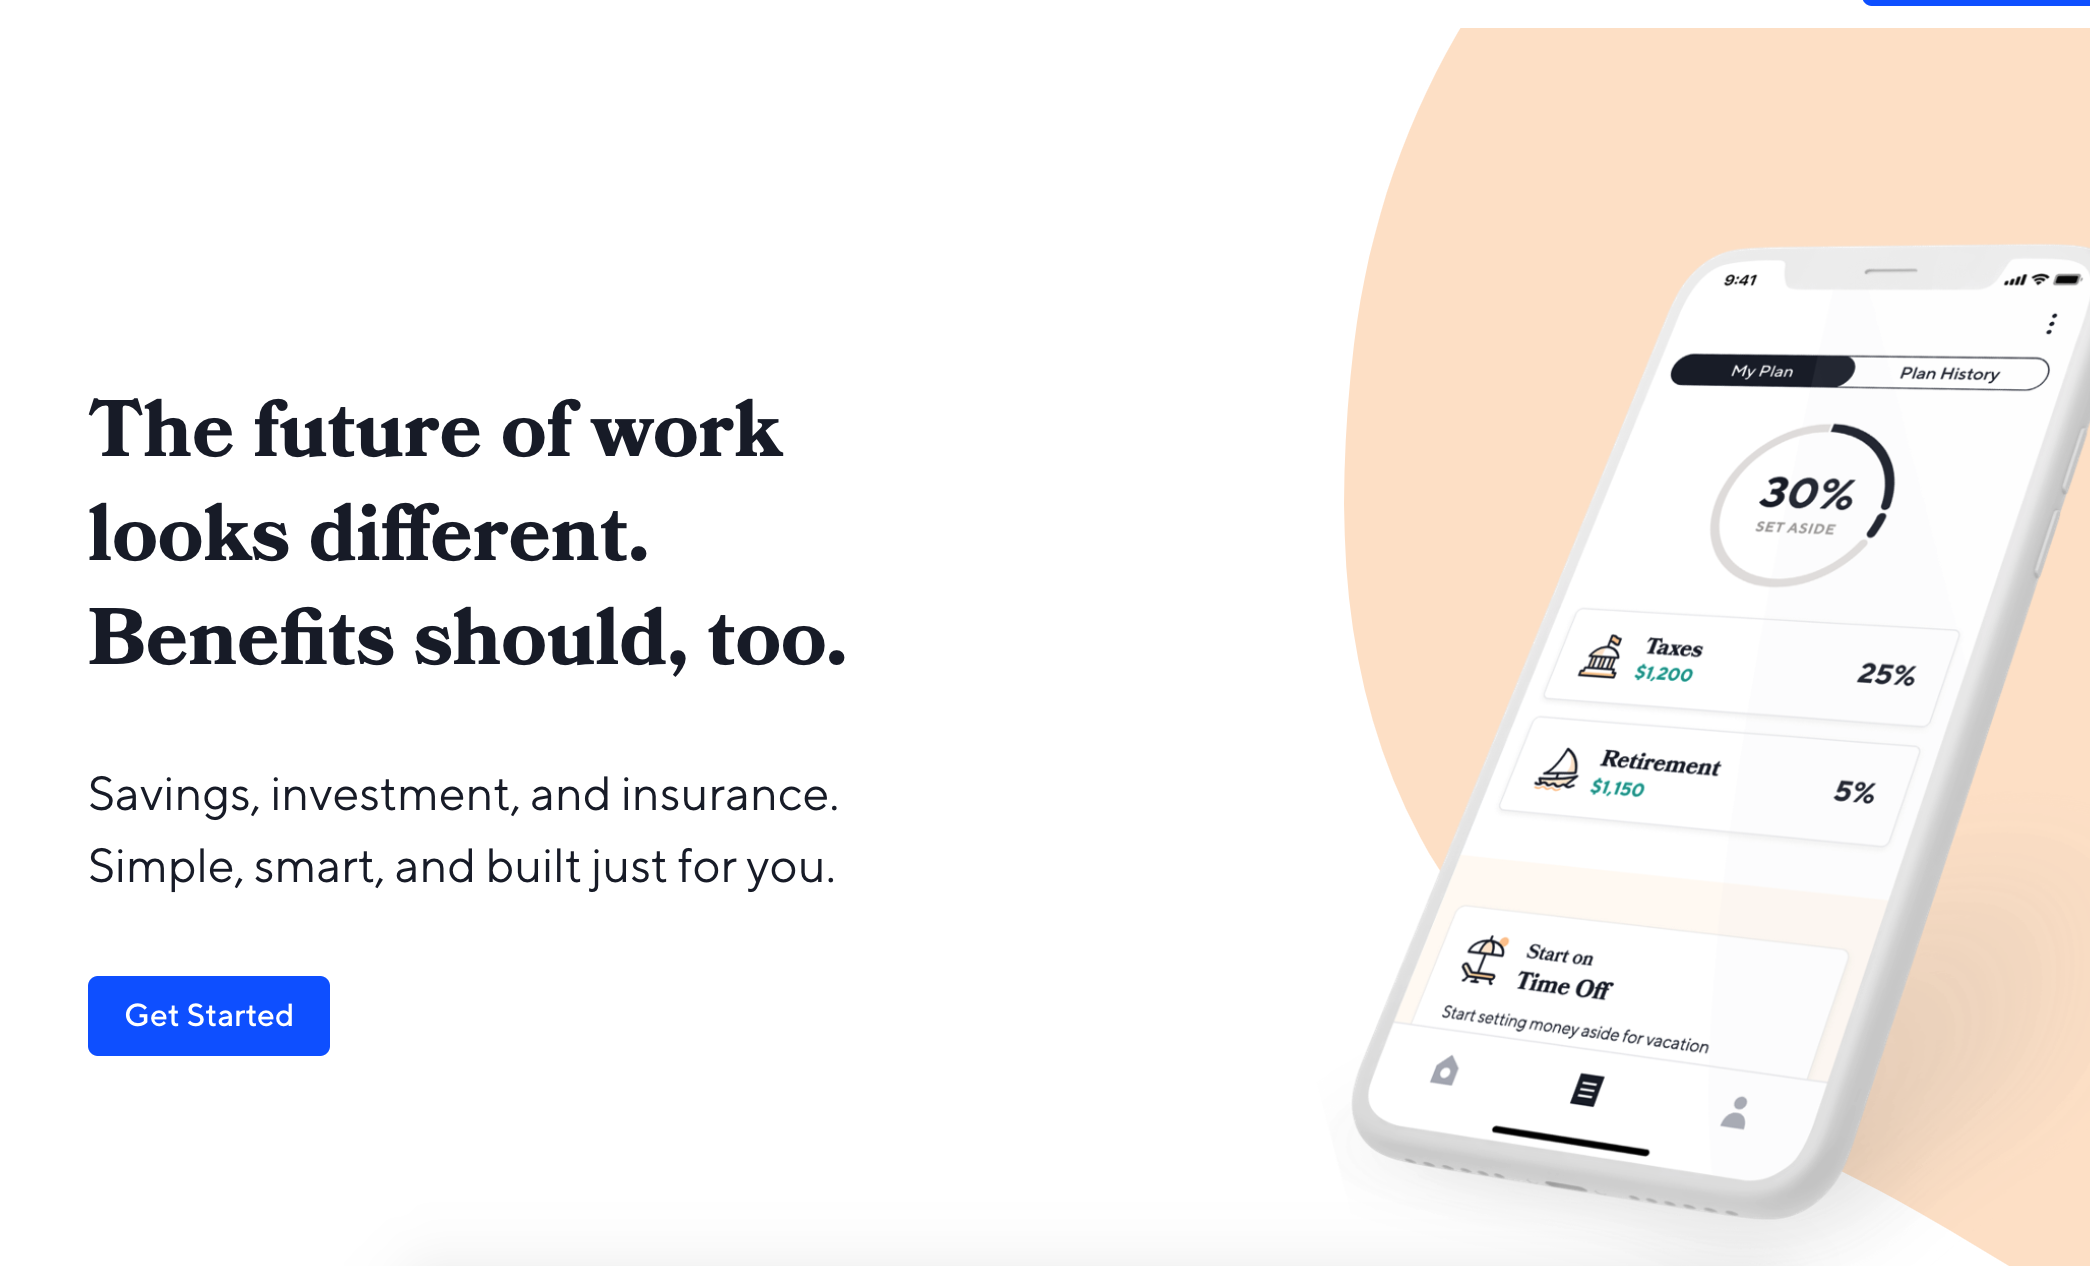 catch - For freelancers, Catch asks a few questions and suggests a plan for withholding, managing savings for Time Off, Retirement, and more.